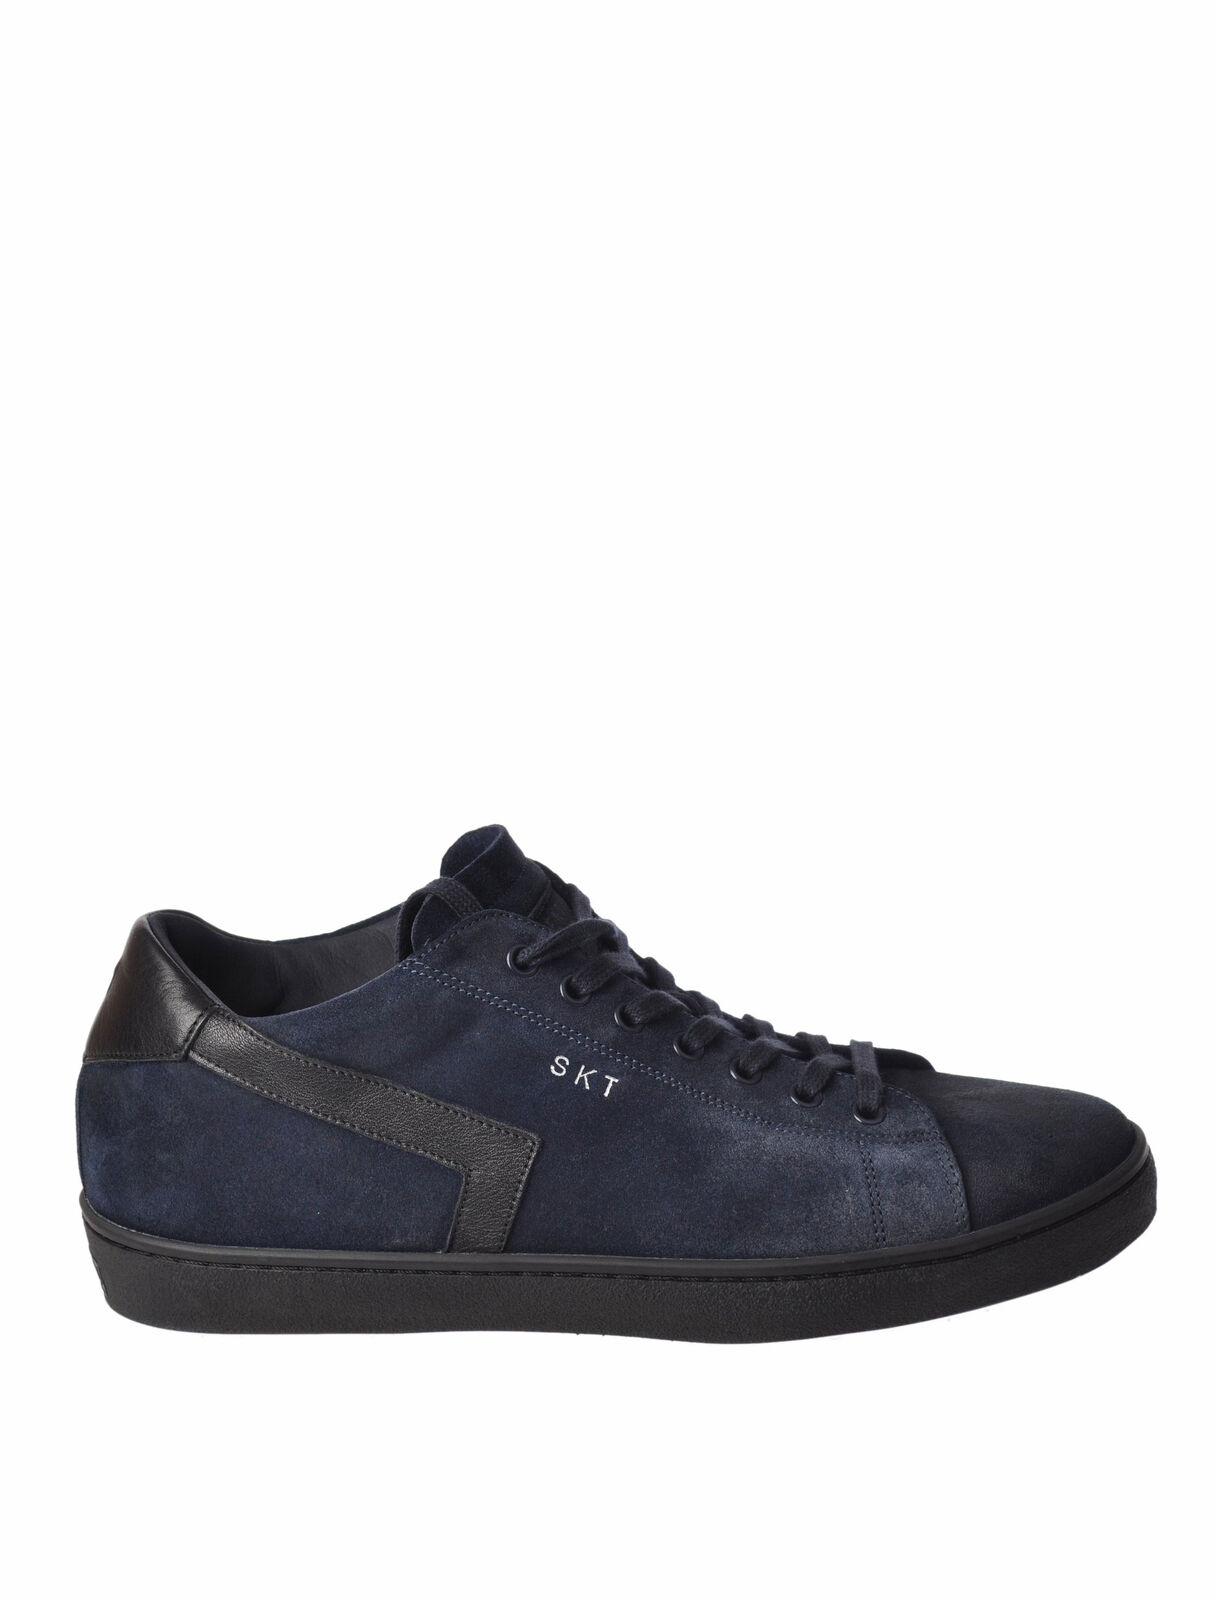 Pelle Crown  -  Shoes - Male - Blue - 2585127N174625